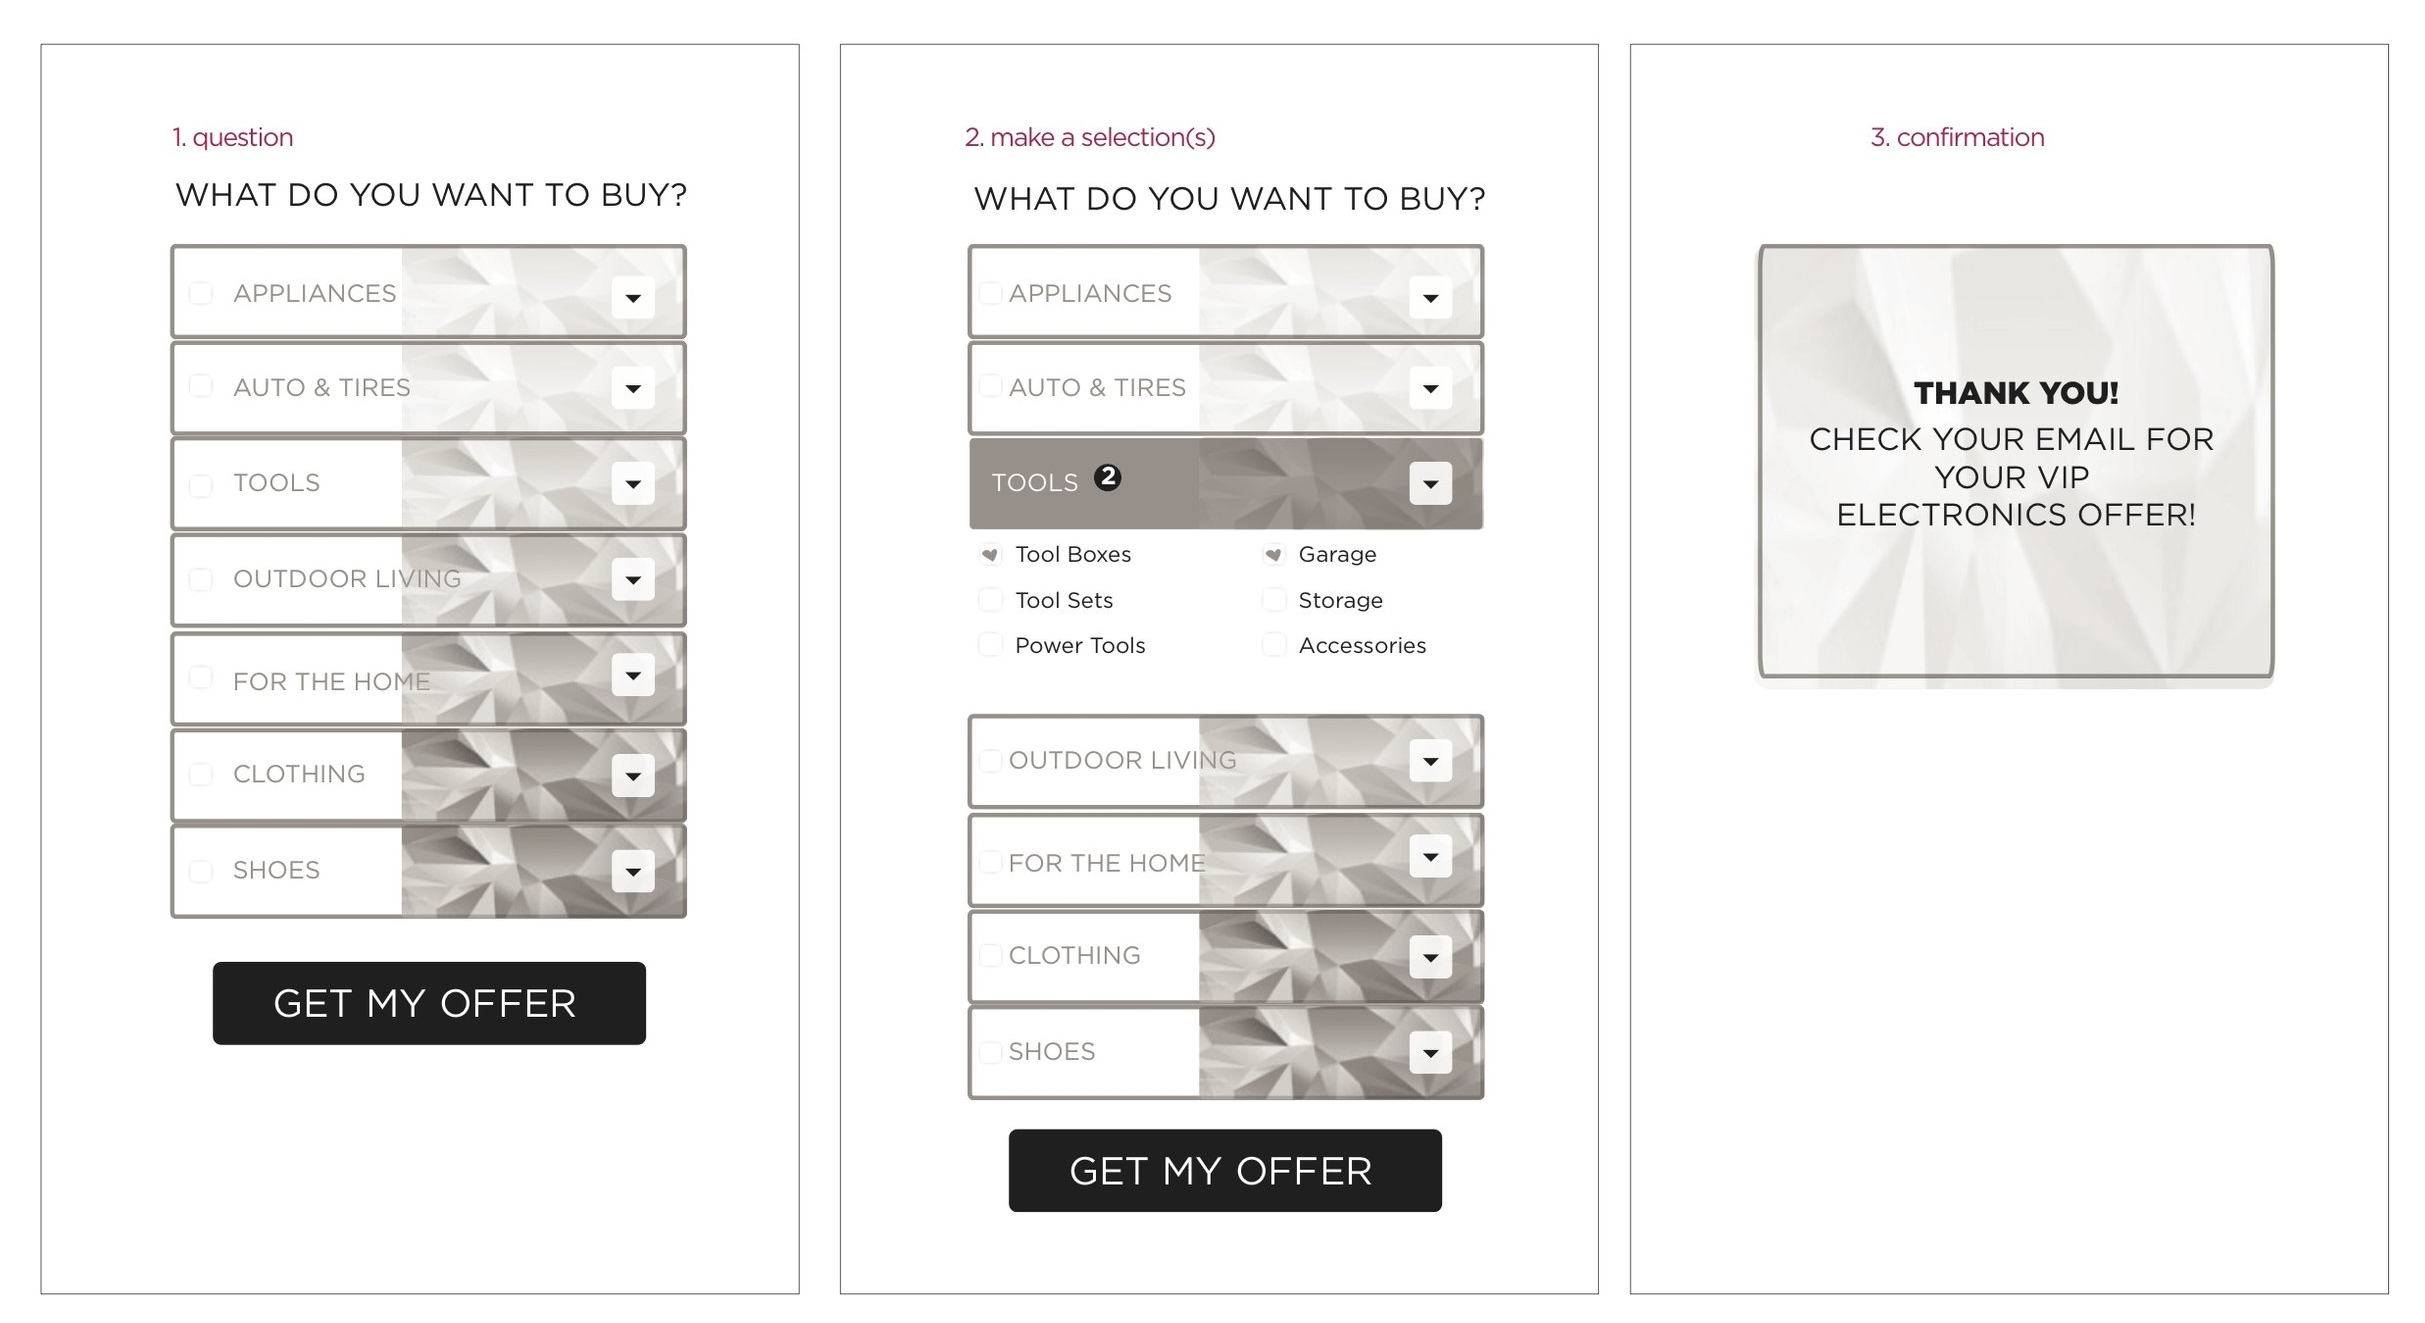 Experience Storyboard (Mobile)